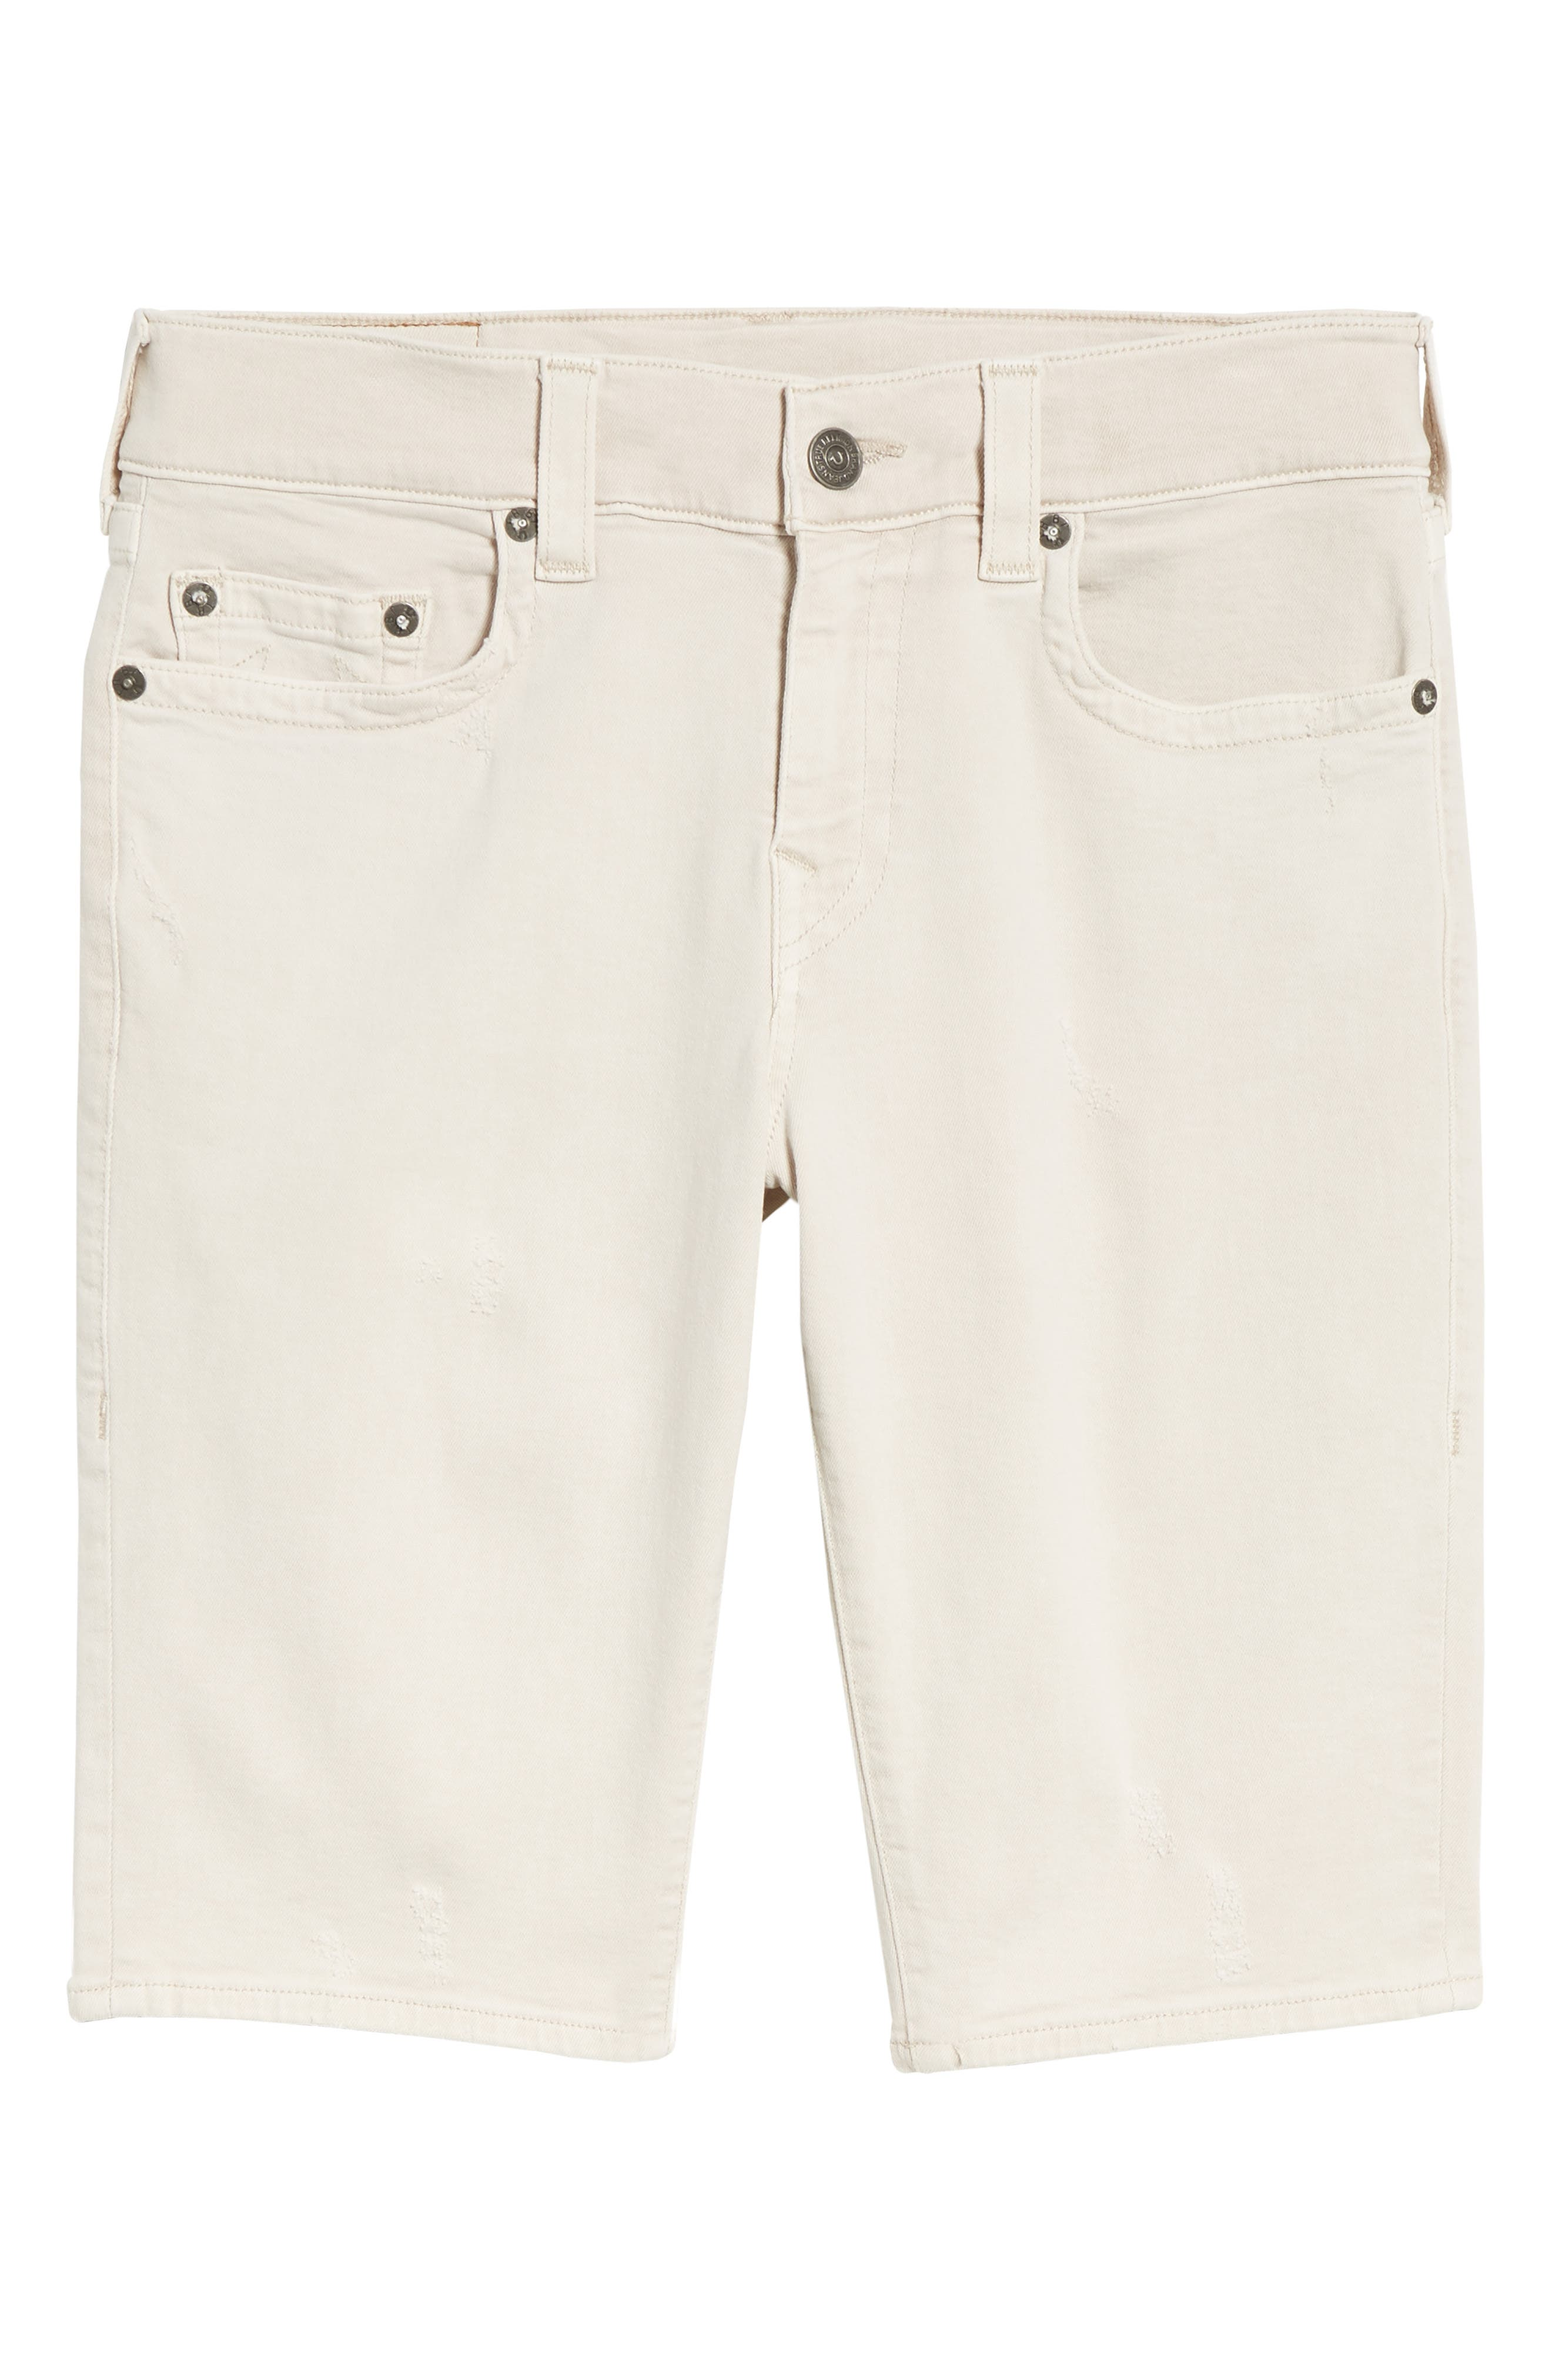 Ricky Relaxed Fit Denim Shorts,                             Alternate thumbnail 6, color,                             Clay